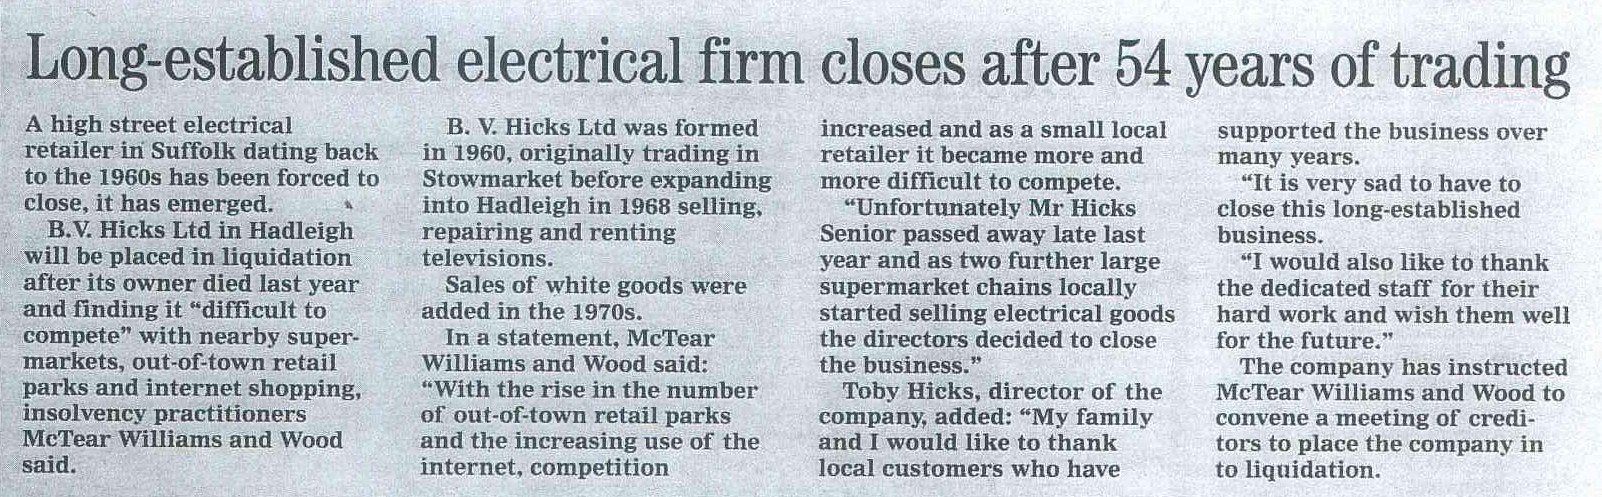 Hadleigh: electrical retailer B V Hicks to close after 54 years of trading